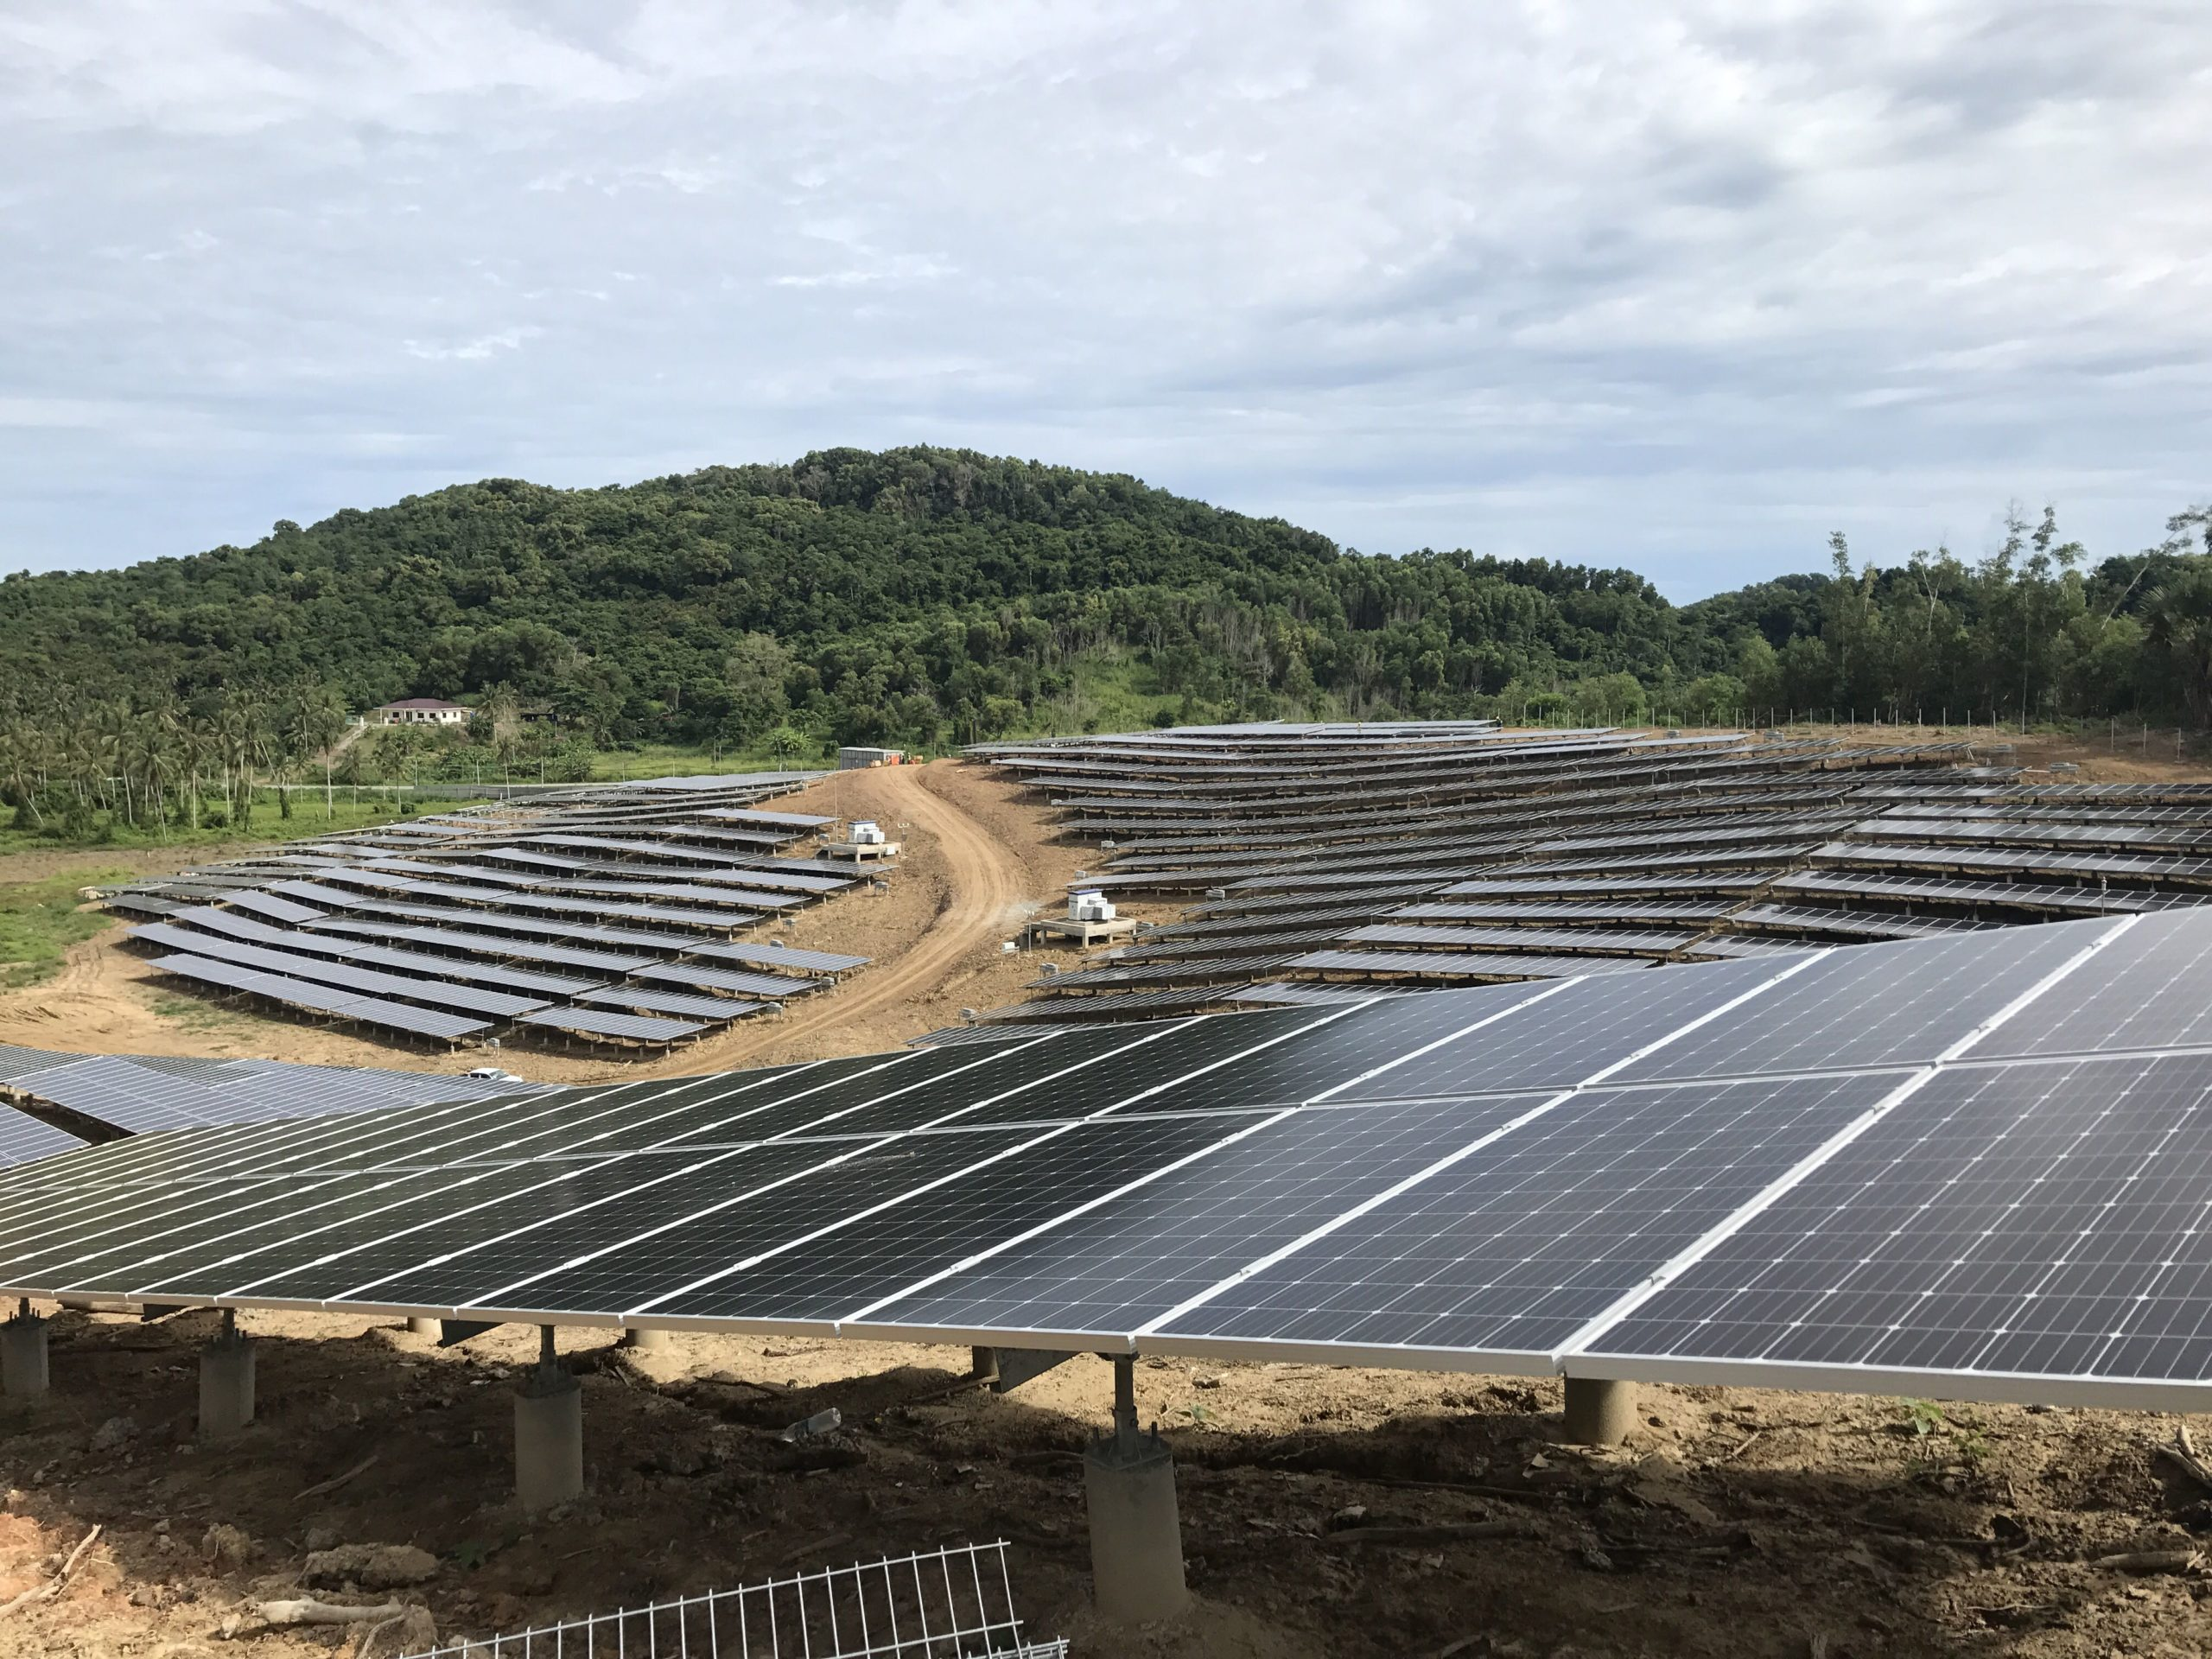 Malaysia's first 50MW (AC) utility-scale PV plant project, part of Energy Commission of Malaysia's (EC) Request for Proposal (RfP) and auction for up to 460MW (AC) of large-scale solar capacity, included a project located in Kudat, Sabah, a fairly mountainous and remote region of the northern tip of Borneo Island, also known for its significant Hakka Chinese minority communities. Image: Huawei